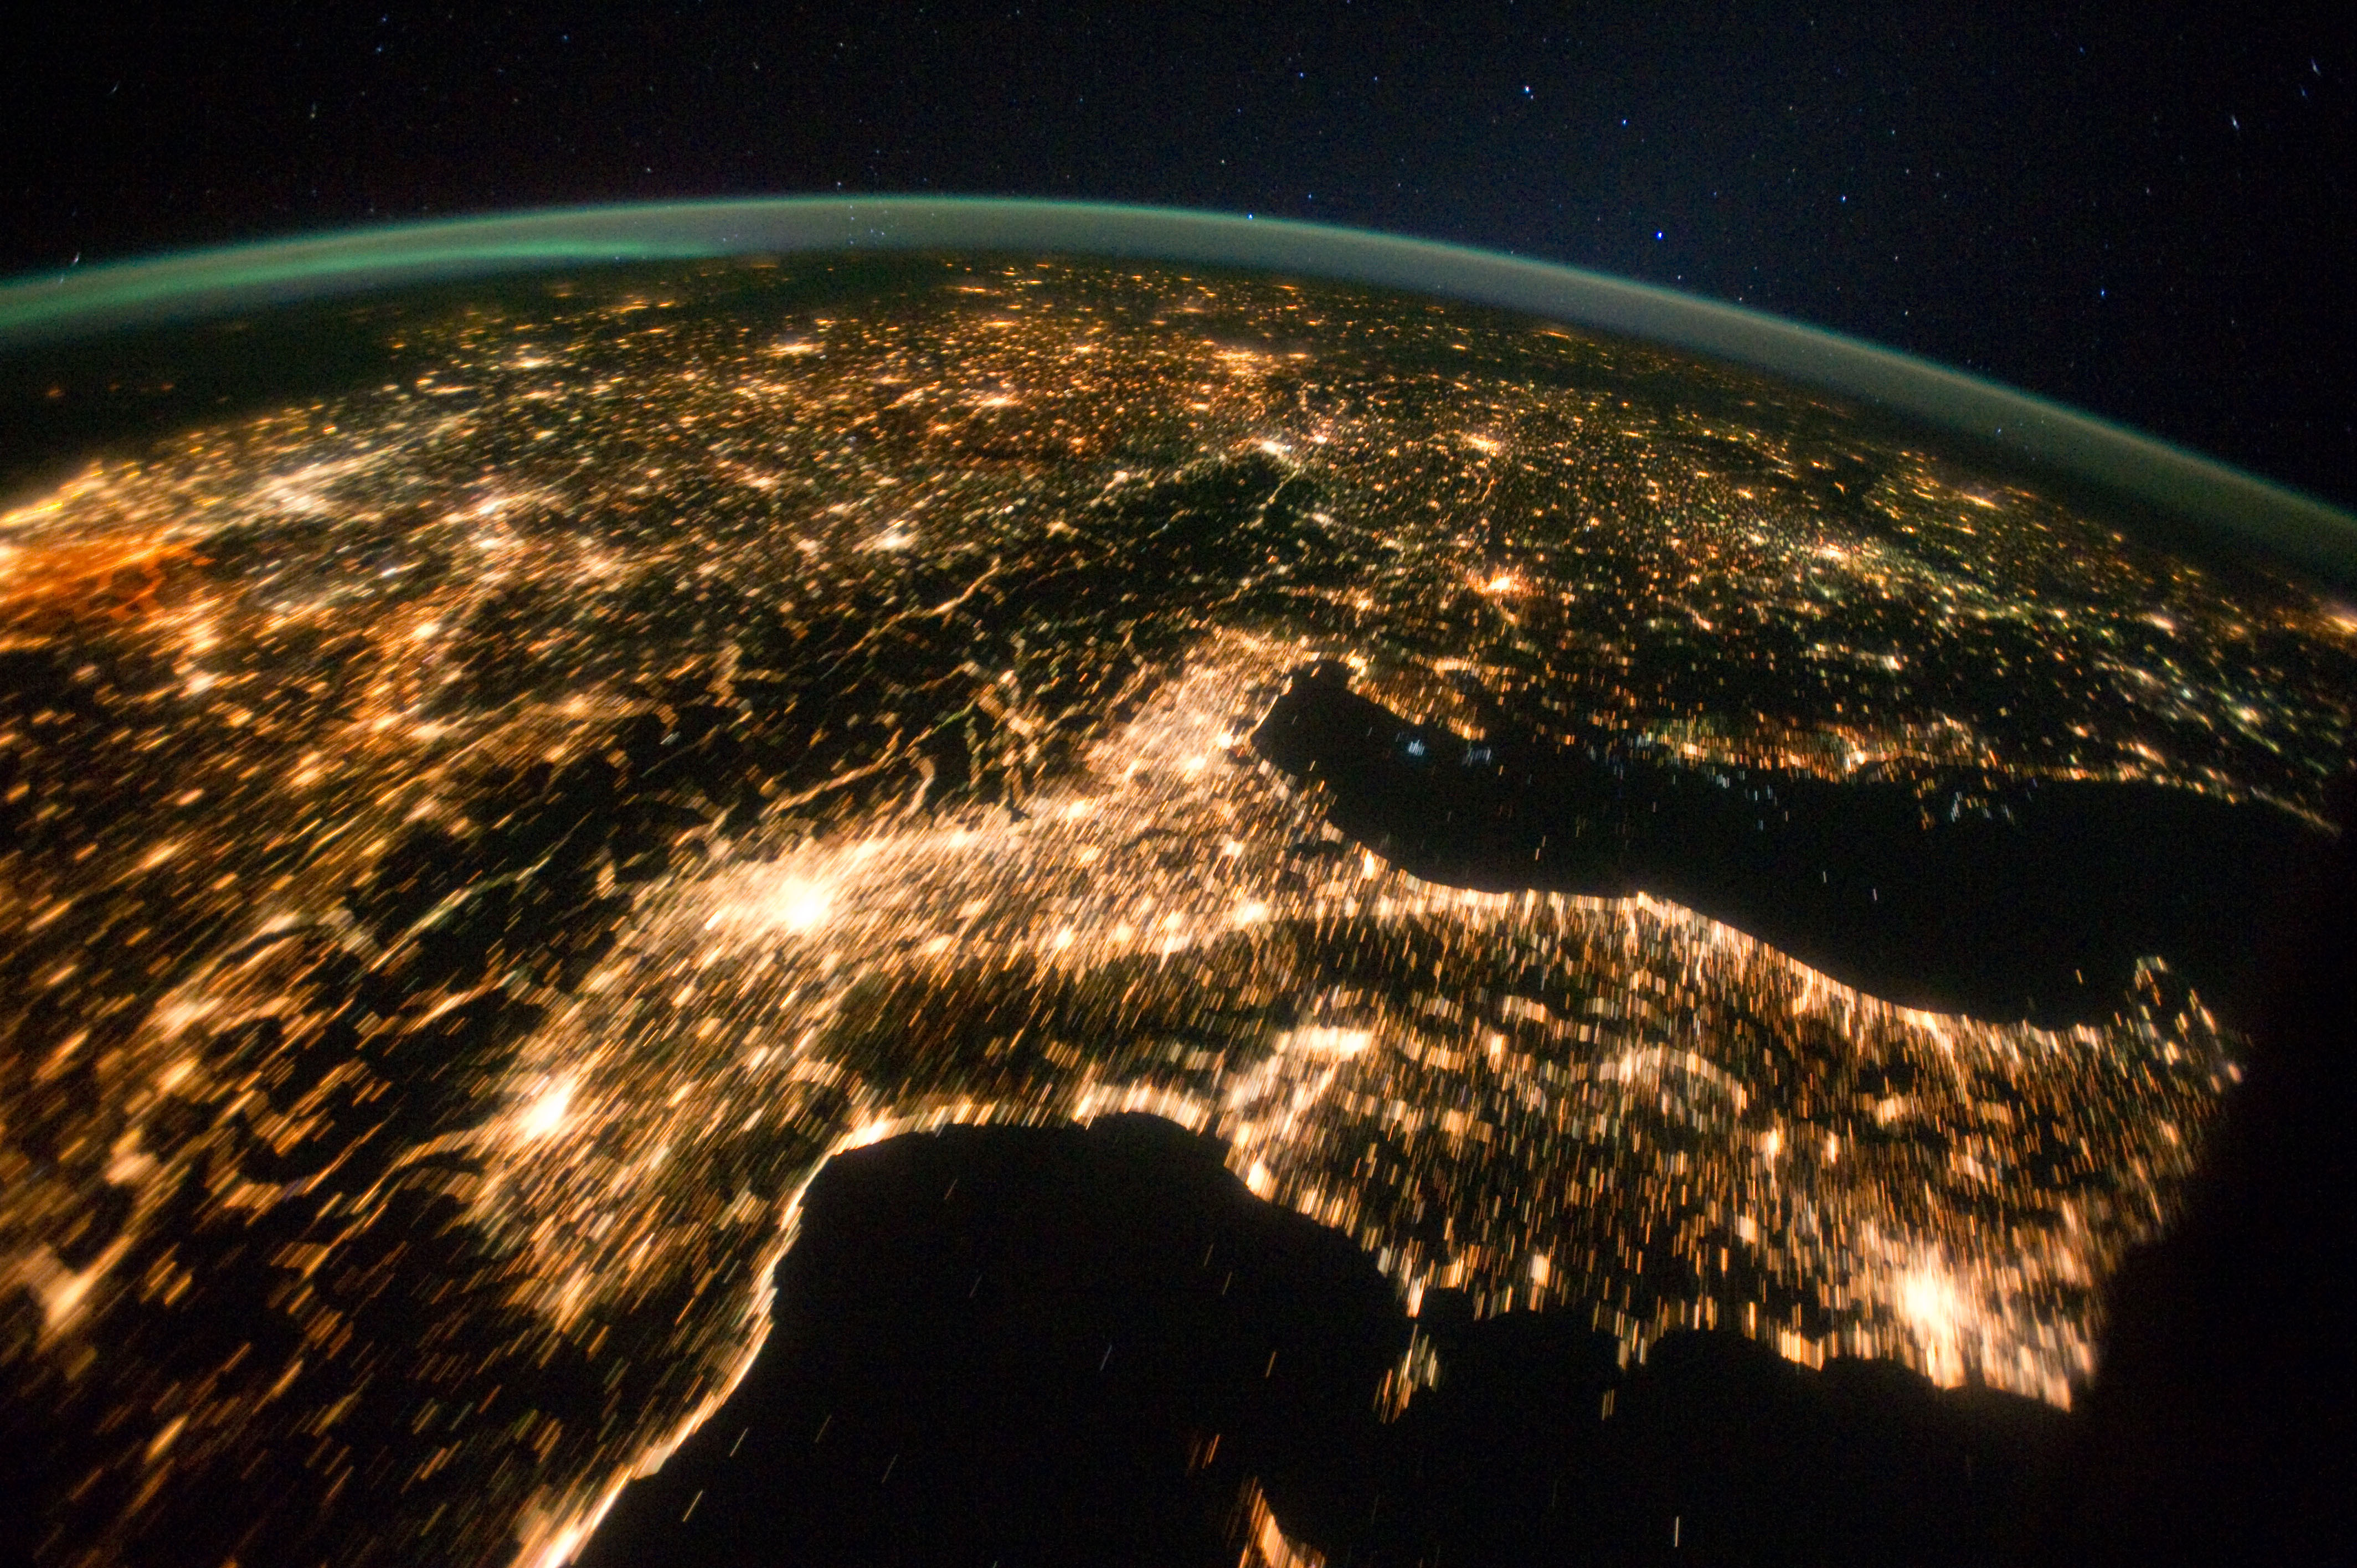 nasa night view of earth - photo #14